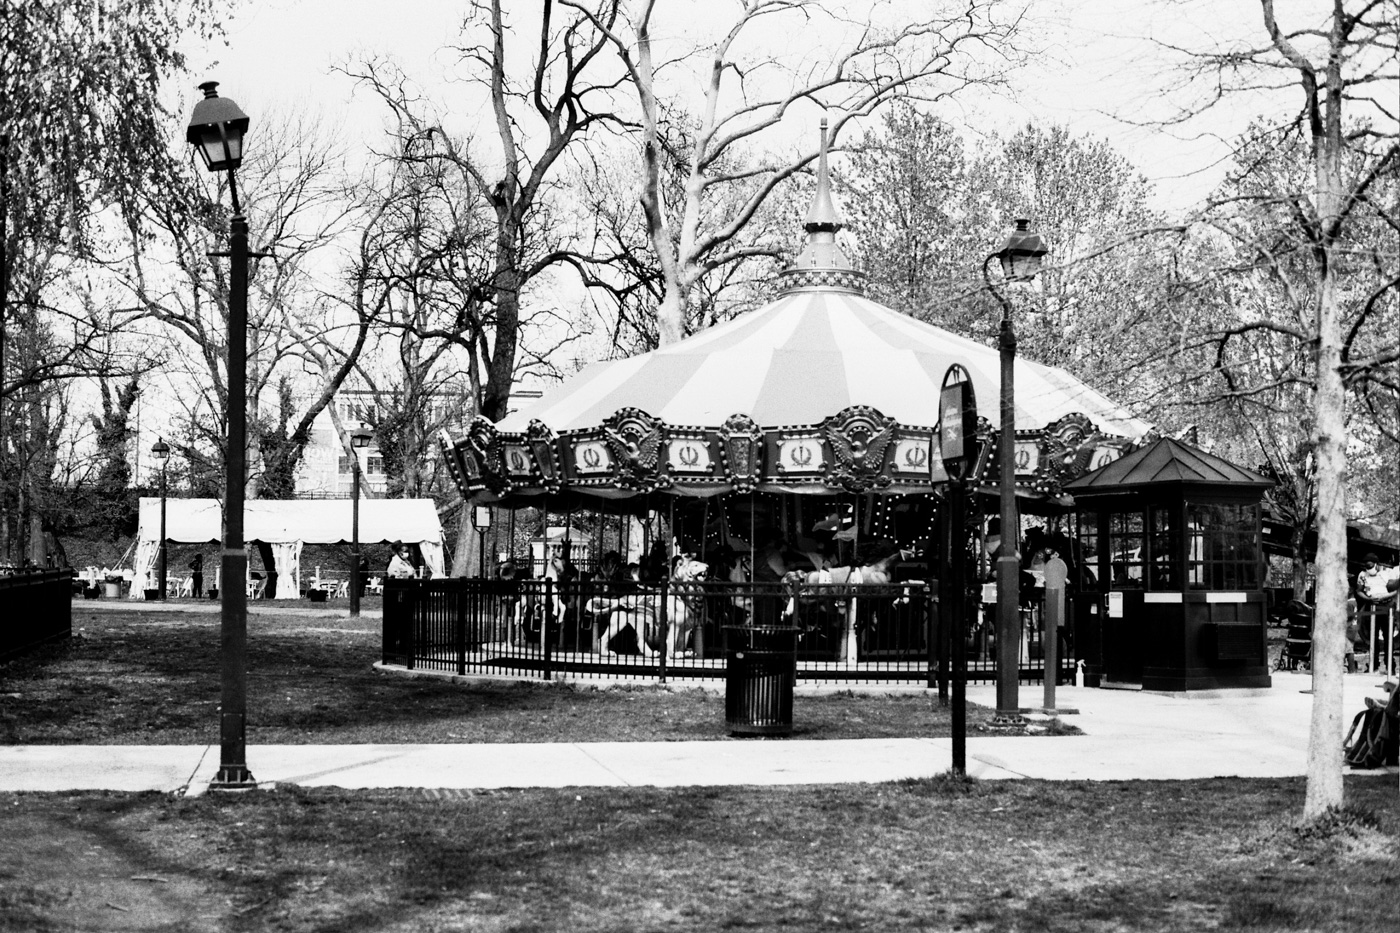 Carousel at Franklin Square